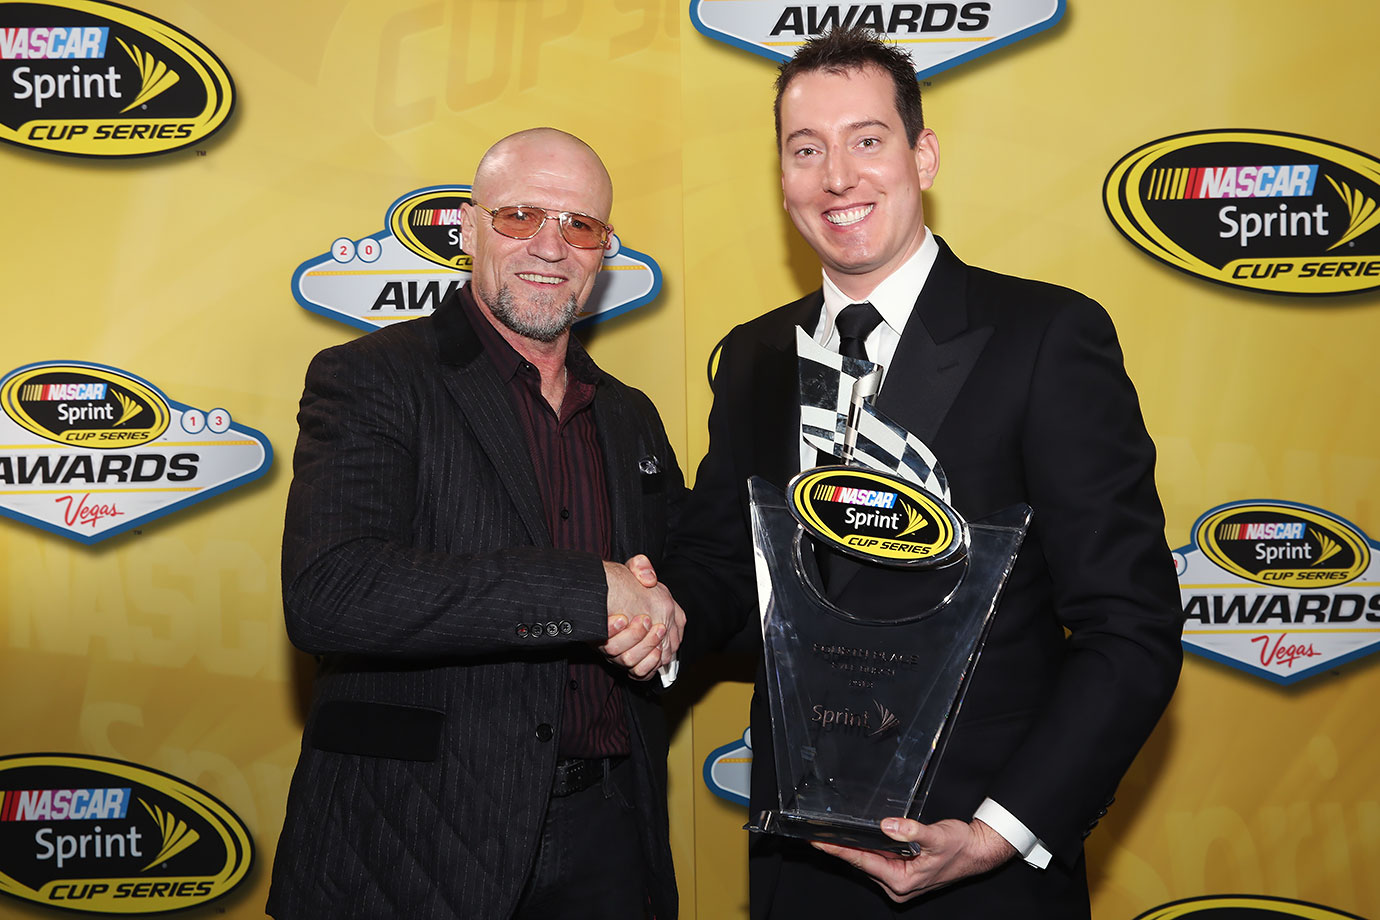 NASCAR Sprint Cup Series Champion's Awards Ceremony — Dec. 6, 2013